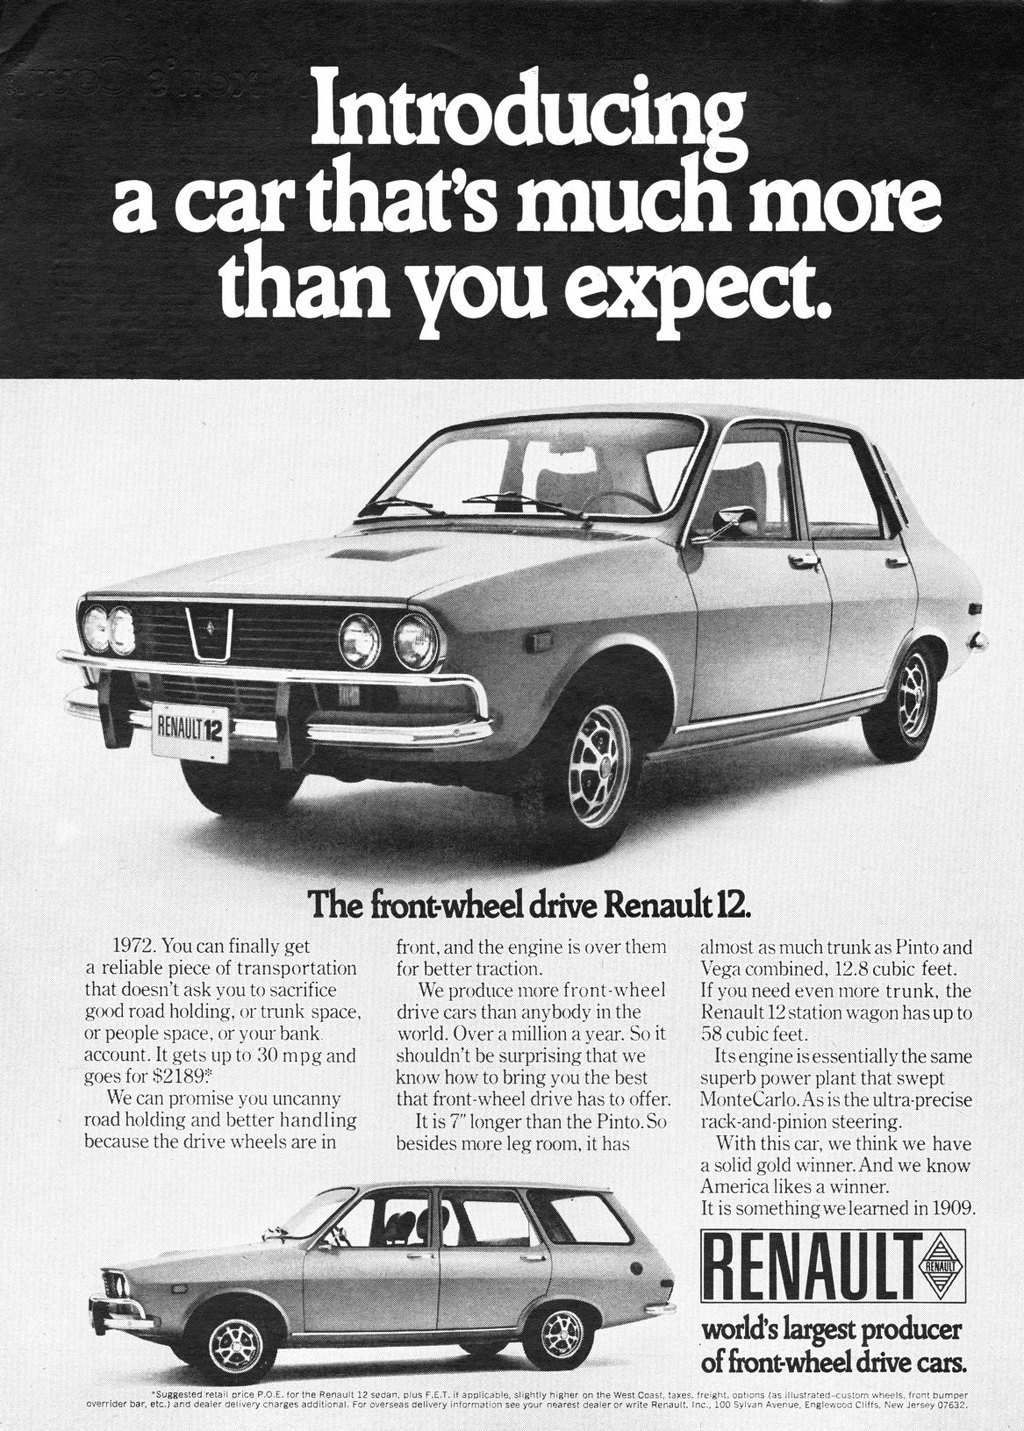 Introducing a car that's much more than you expect.   The front-wheel drive Renault 12.  1972. You can finally get a reliable piece of transportation that doesn't ask you to sacrifice good road holding, or trunk space. or people space, or your bank. account. It gets up to 30 mpg and goes for 82189? We can promise you uncanny road holding and better handling because the drive wheels are in  front, and the engine is over them for better traction. We produce more front-wheel drive cars than anybody in the world. Over a million a year. So it shouldn't be surprising that we know how to bring you the best that front-wheel drive has to offer. It is 7'' longer than the Pinto. So besides more leg room, it has   almost as much trunk as Pinto and Vega combined, 12.8 cubic feet. If you need even more trunk, the Renault 12 station wagon has up to 58 cubic feet. Its engine is essentially the same superb power plant that swept MonteCarlo. As is the ultra-precise rack-and-pinion steering. With this car, we think we have a solid gold winner. And we know America likes a winner. It is something we learned in 1909.  RENAULT ca.) A  world's largest producer of front-wheel drive cars.  Suggested retail price P.O.E. for the Renault 12 sedan, plus F.E.T. if applicable, slightly higher on the West Coast, taxes. freight. options (as illustrated-custom wheels. front bumper overrider bar. etc.) alto dealer delivery cnarges additional. For overseas delivery information see your nearest dealer or write Renault. Inc., 100 Sylvan Avenue. Englewood Cliffs. New Jersey 07632.